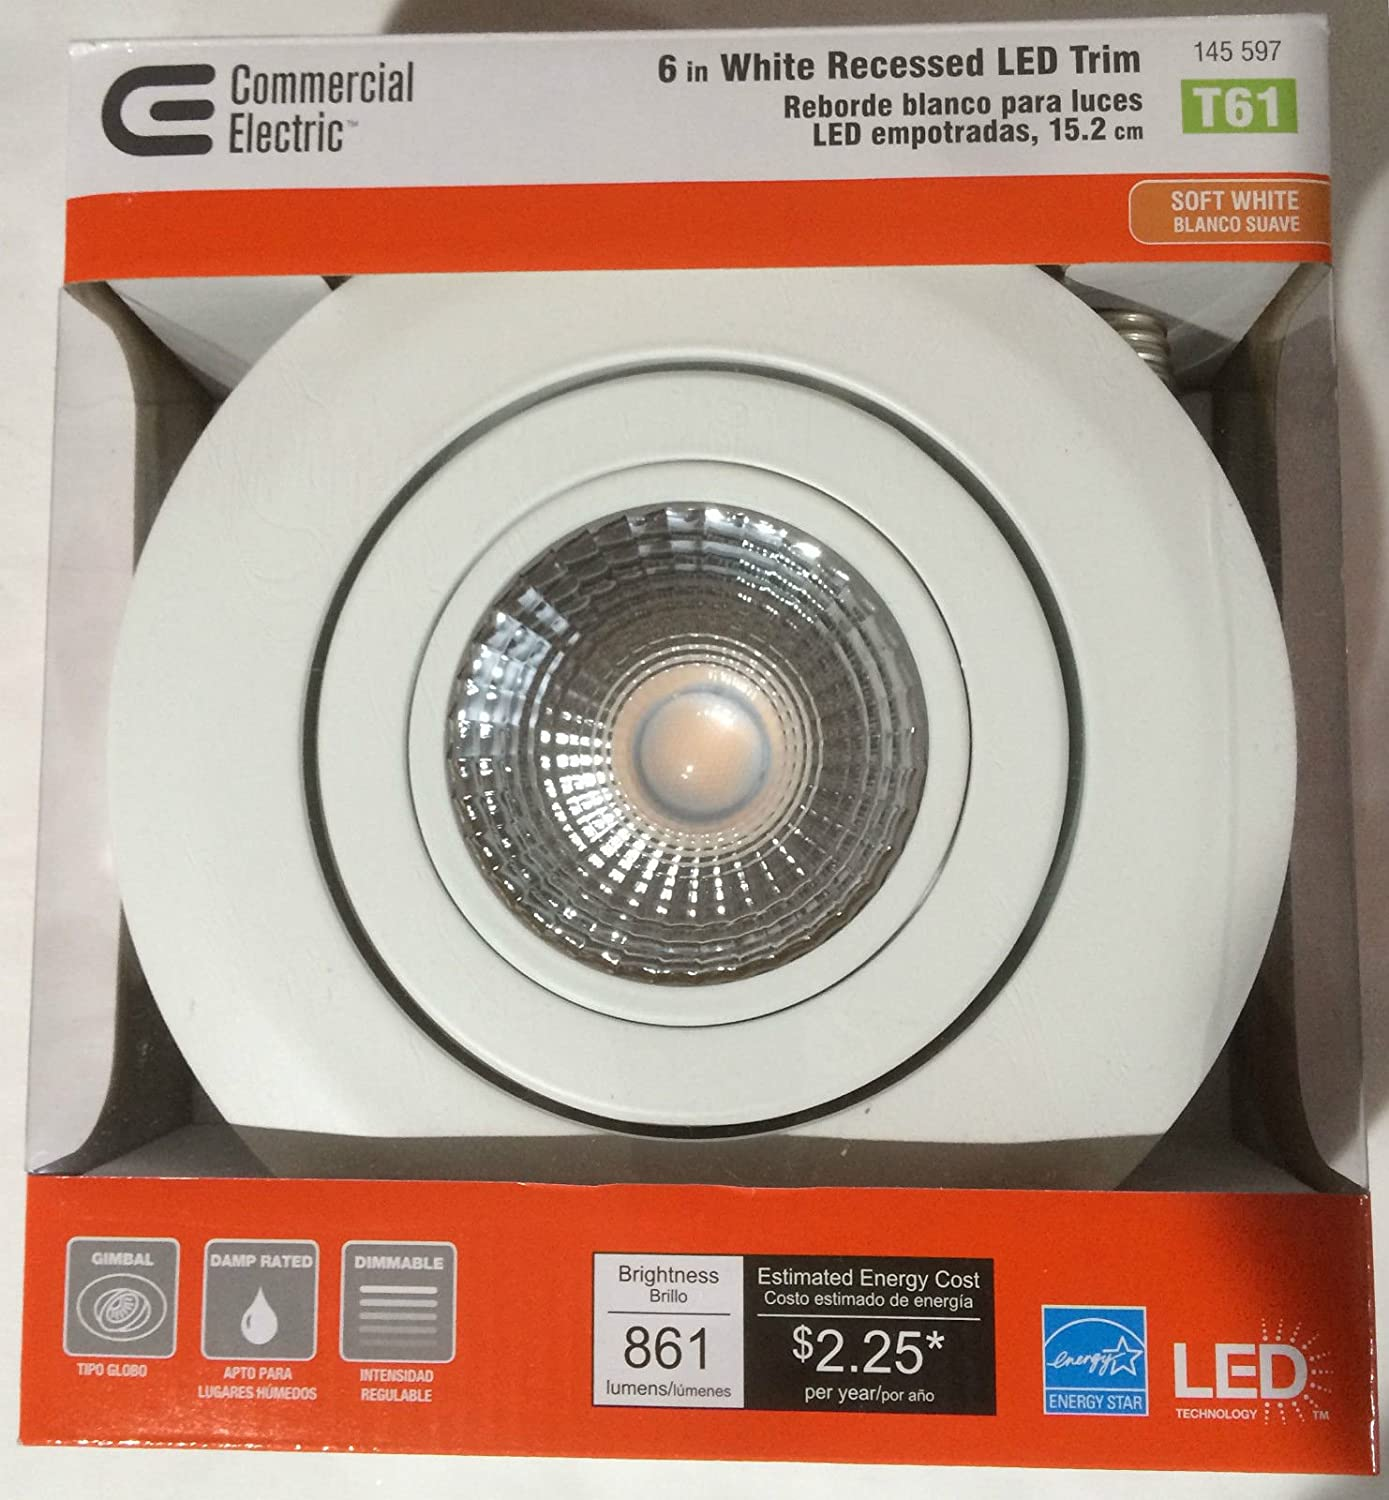 T61 / Commercial Electric 6 in. Recessed White Gimbal LED Trim - Recessed Light Fixture Trims - Amazon.com & T61 / Commercial Electric 6 in. Recessed White Gimbal LED Trim ... azcodes.com